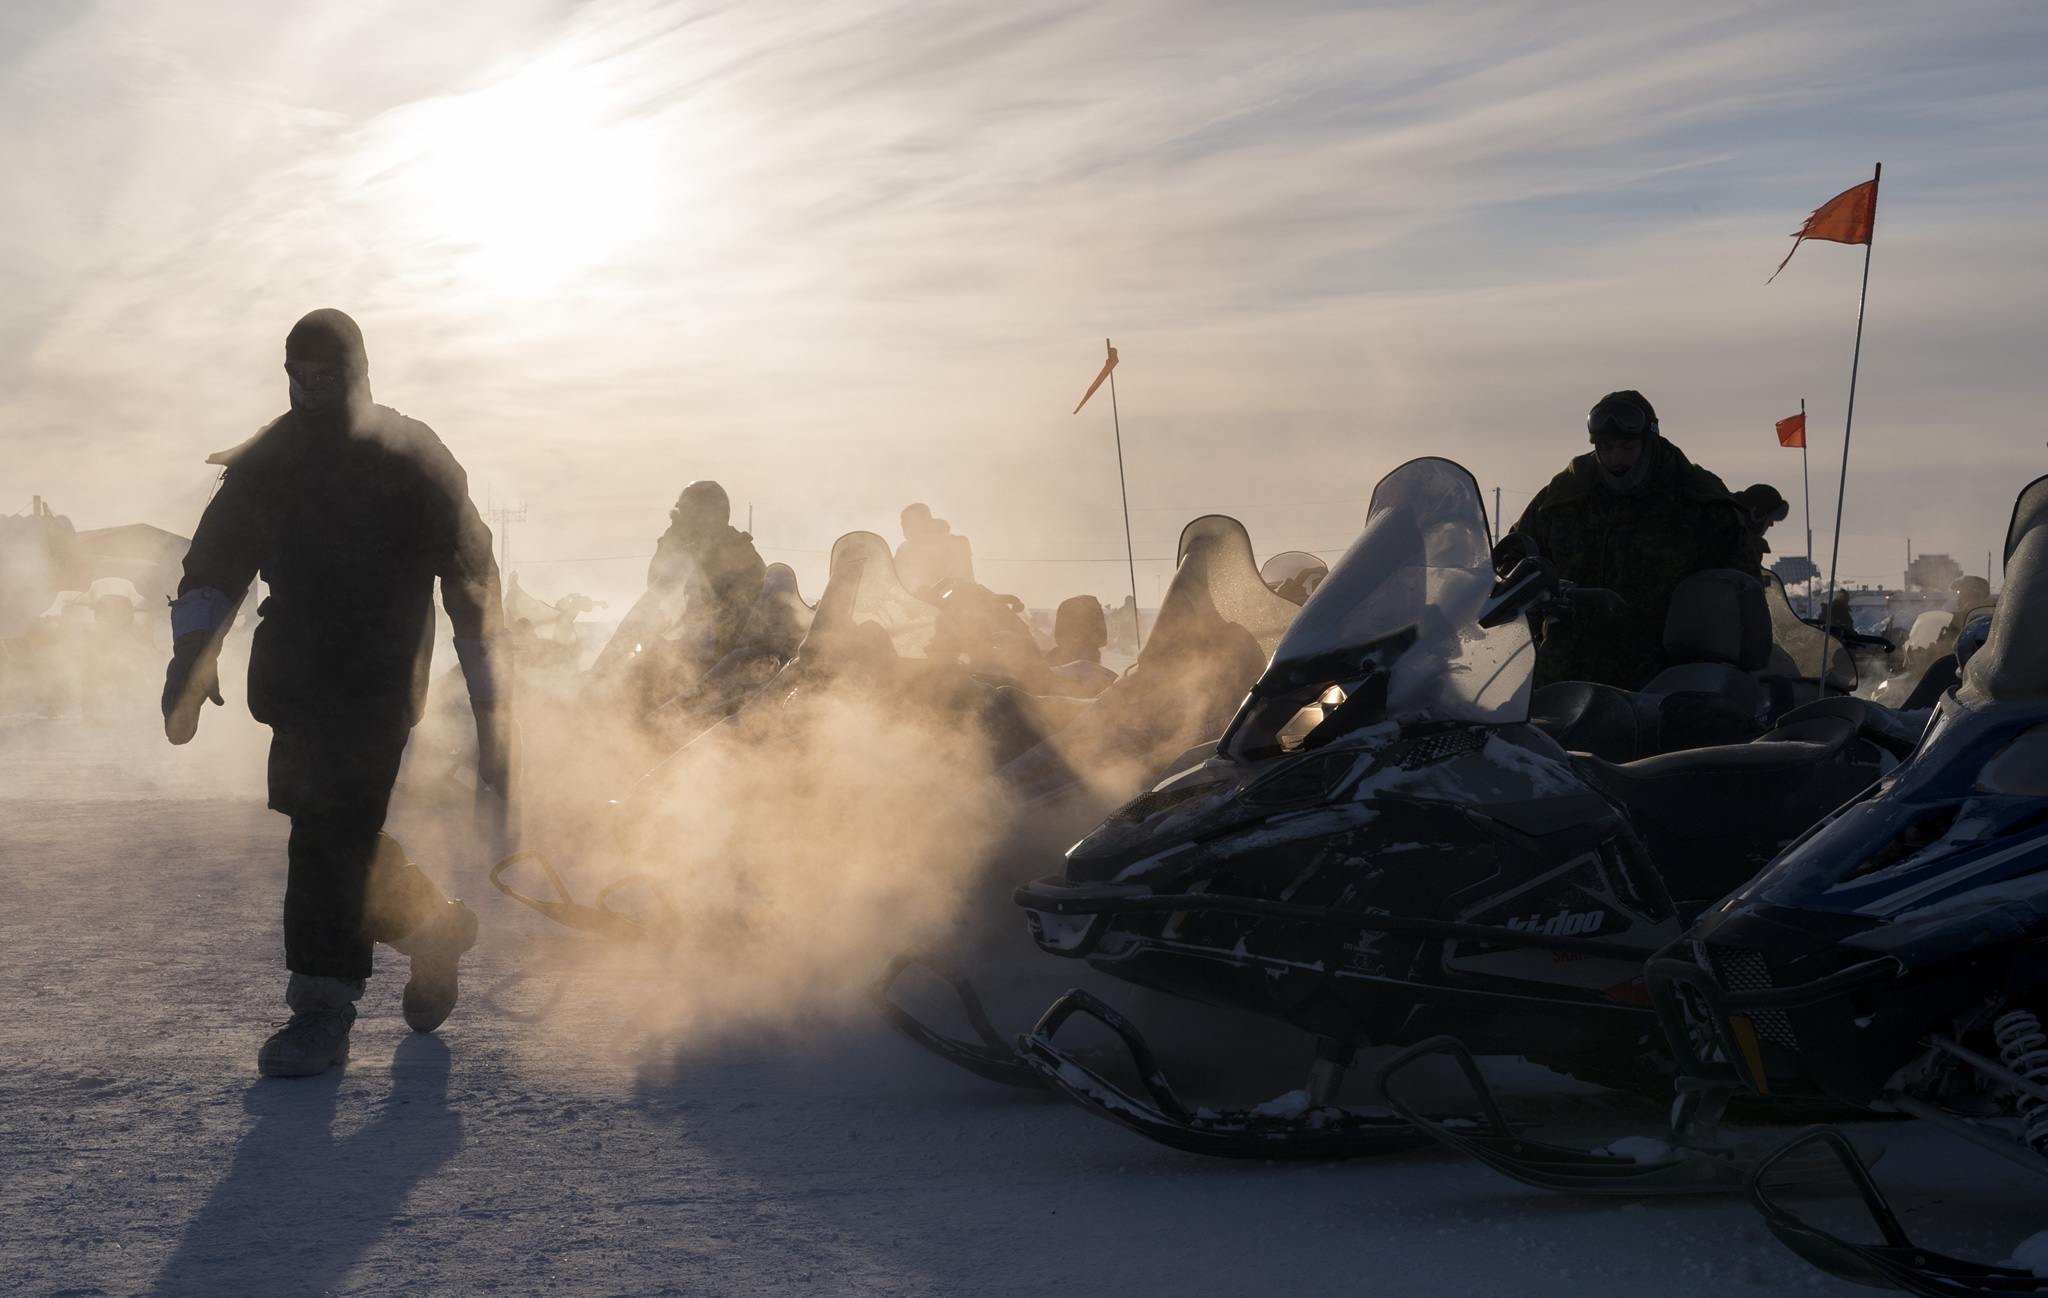 Deployed members from 12e Régiment blindé du Canada warm up the engines of Light Over Snow Vehicles in preparation for a patrol during Operation NUNALIVUT 2017 in Hall Beach, Nunavut February 24, 2017. Photo: Sgt Jean-François Lauzé, Task Force Imagery Technician